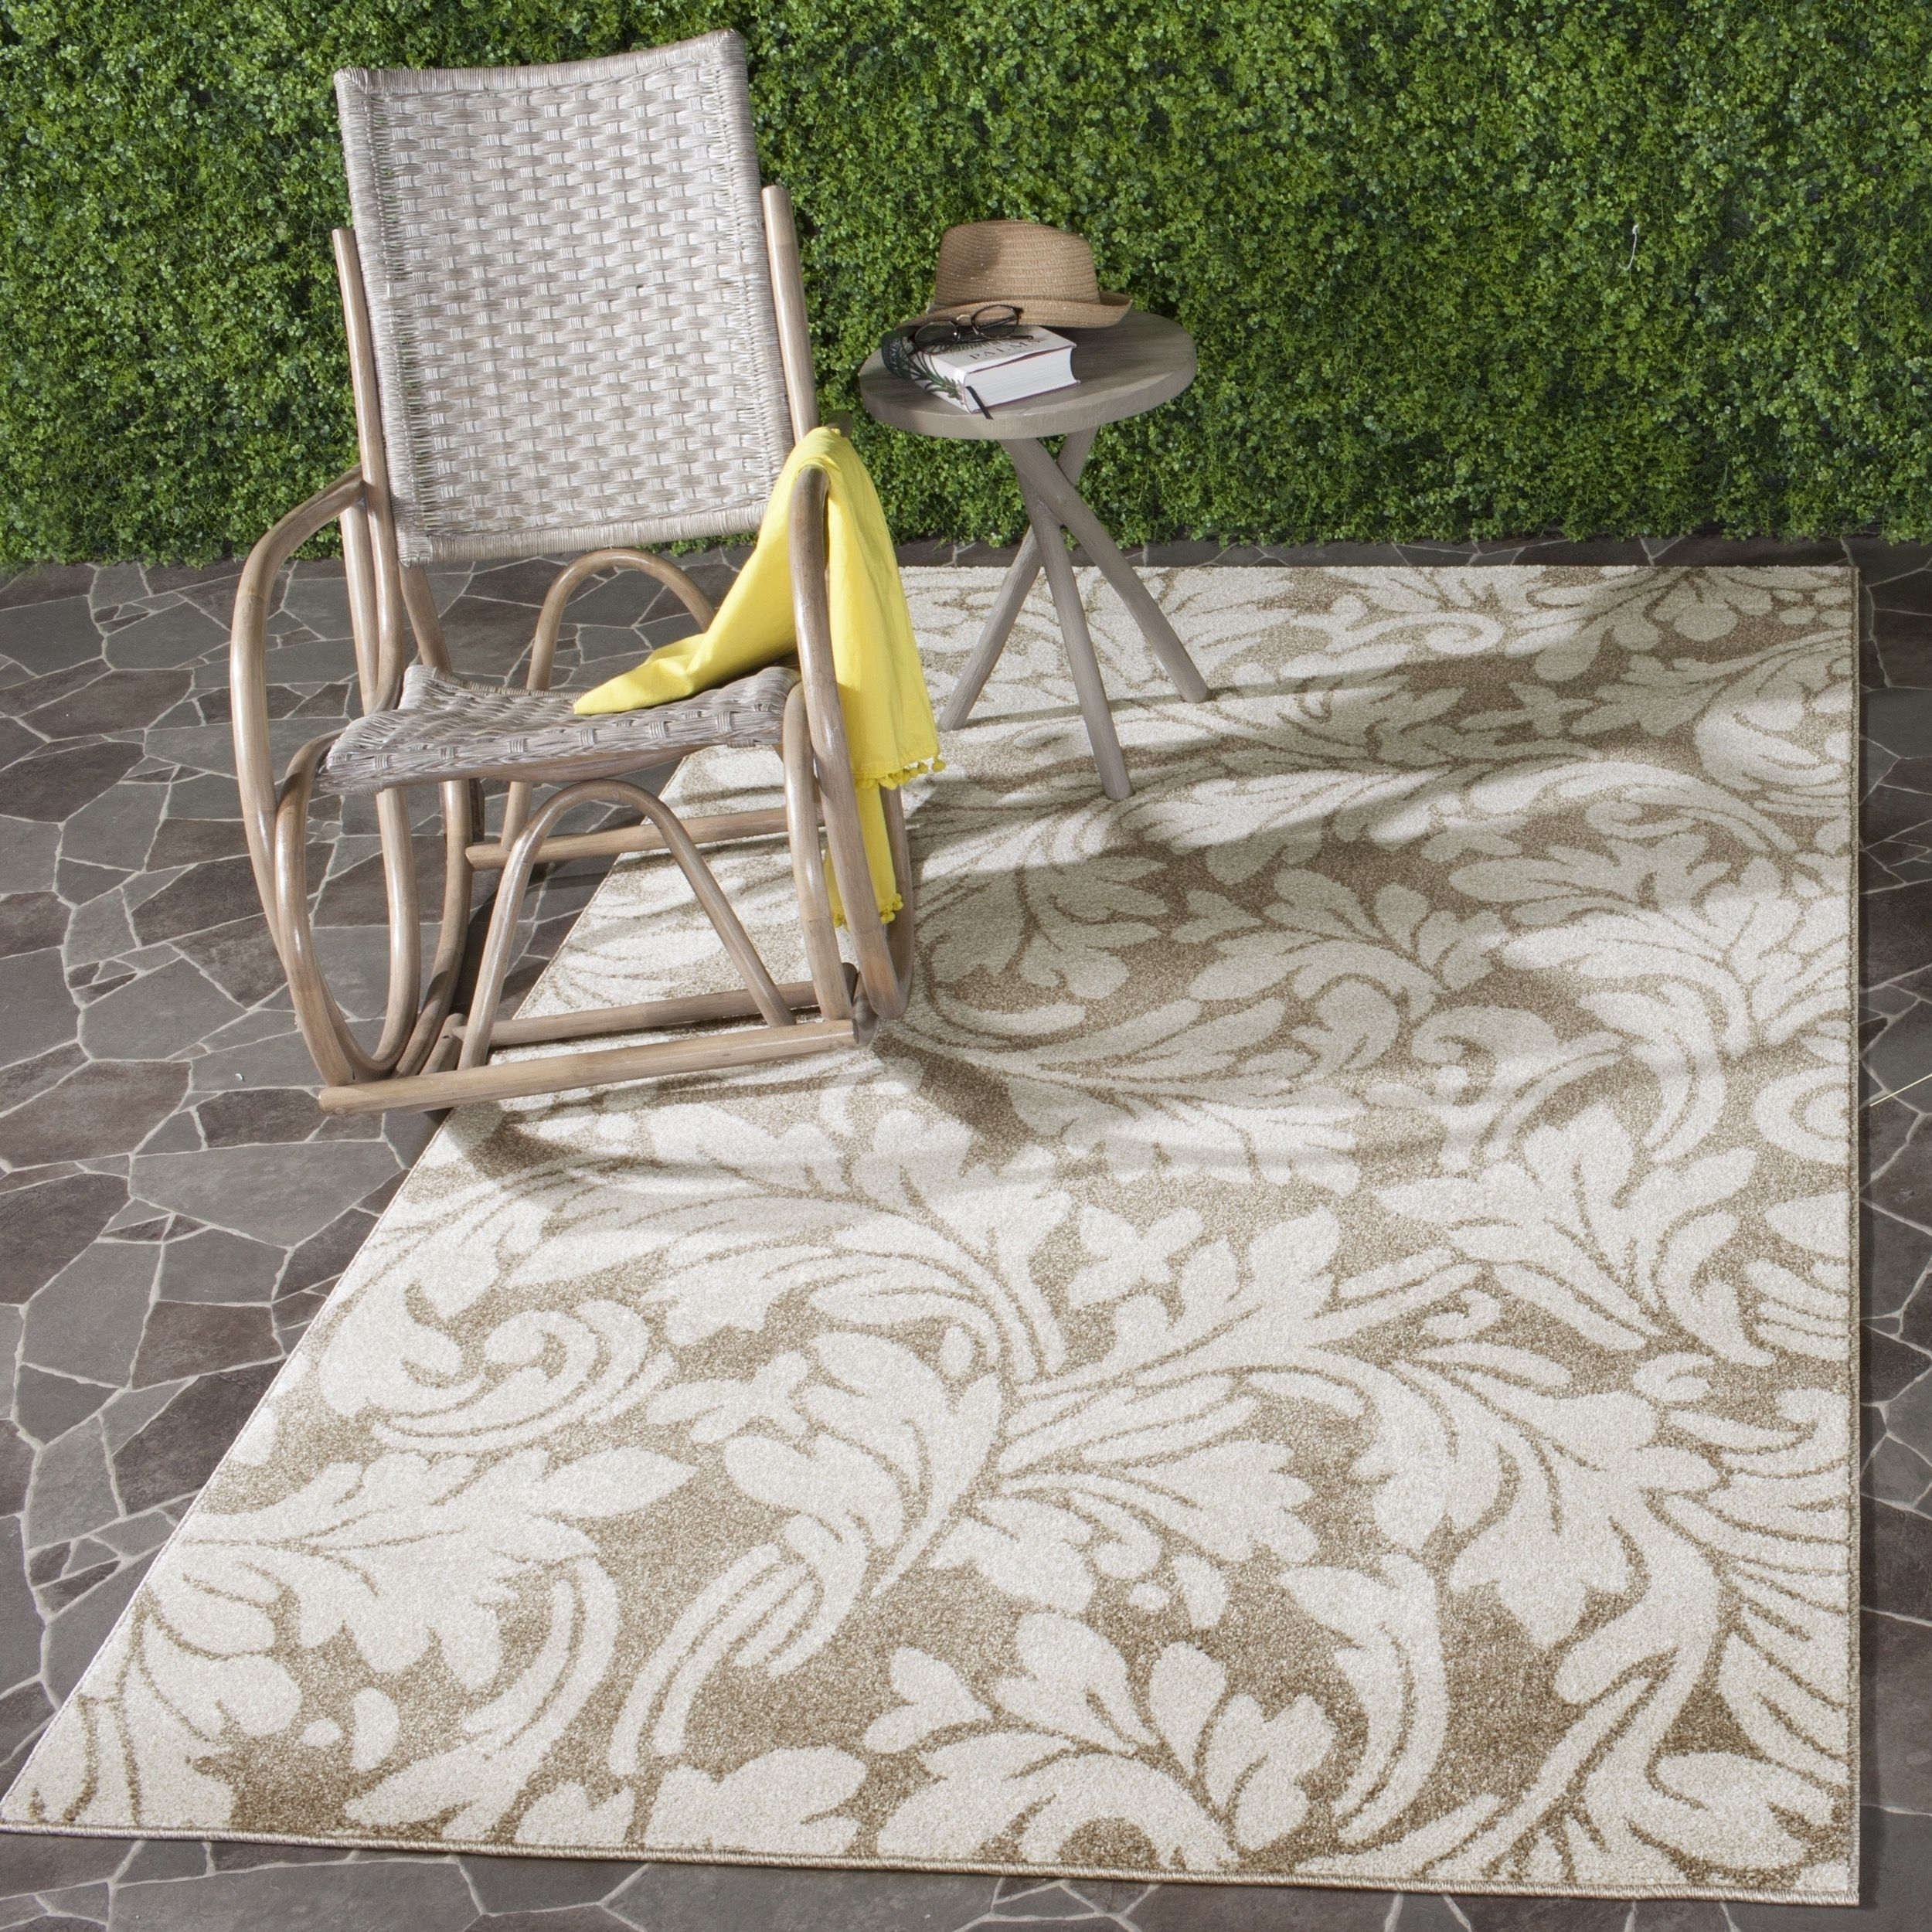 Safavieh Indoor Outdoor Amherst Wheat Beige Rug 9 X 12 Amt425s 9 Natural Size 9 X 12 Polypropylene Geometric Indoor Outdoor Area Rugs Outdoor Area Rugs Patio Rugs